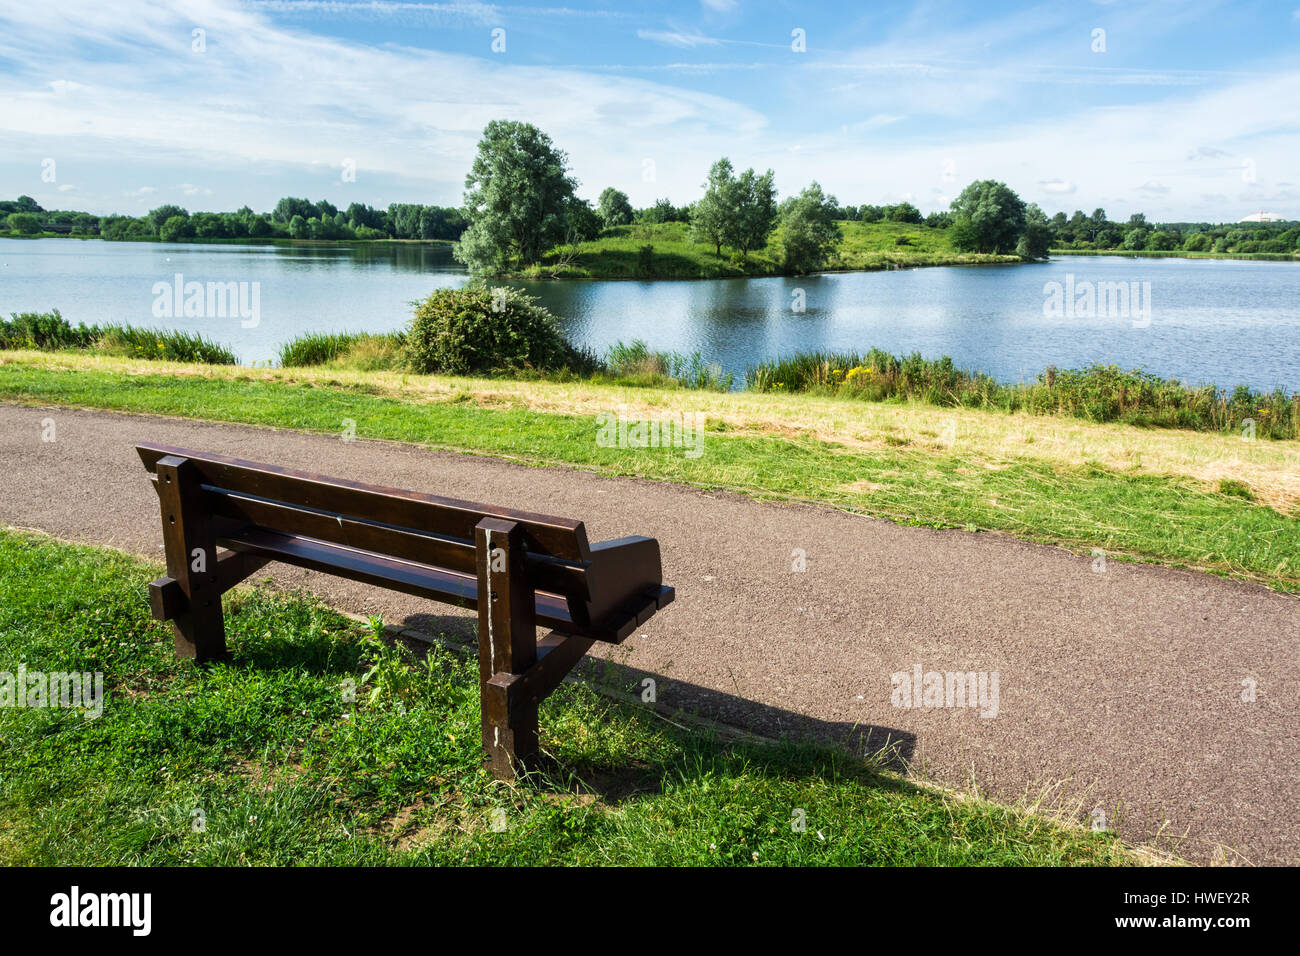 Bench on the bank of Willen Lake - Stock Image